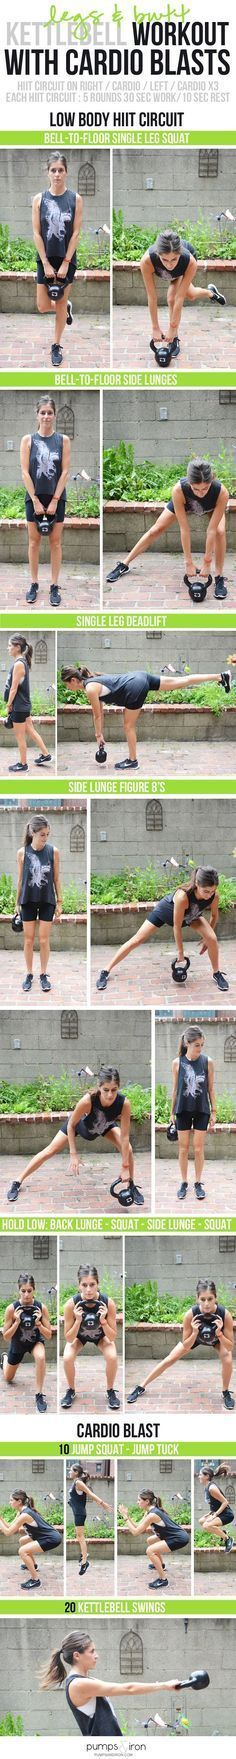 Butt & Legs Kettlebell Workout with Cardio - awesome lower body workout (and great for strengthening your back!) #GorillaGlass #sponsored lower back pain exercises https://www.kettlebellmaniac.com/kettlebell-exercises/